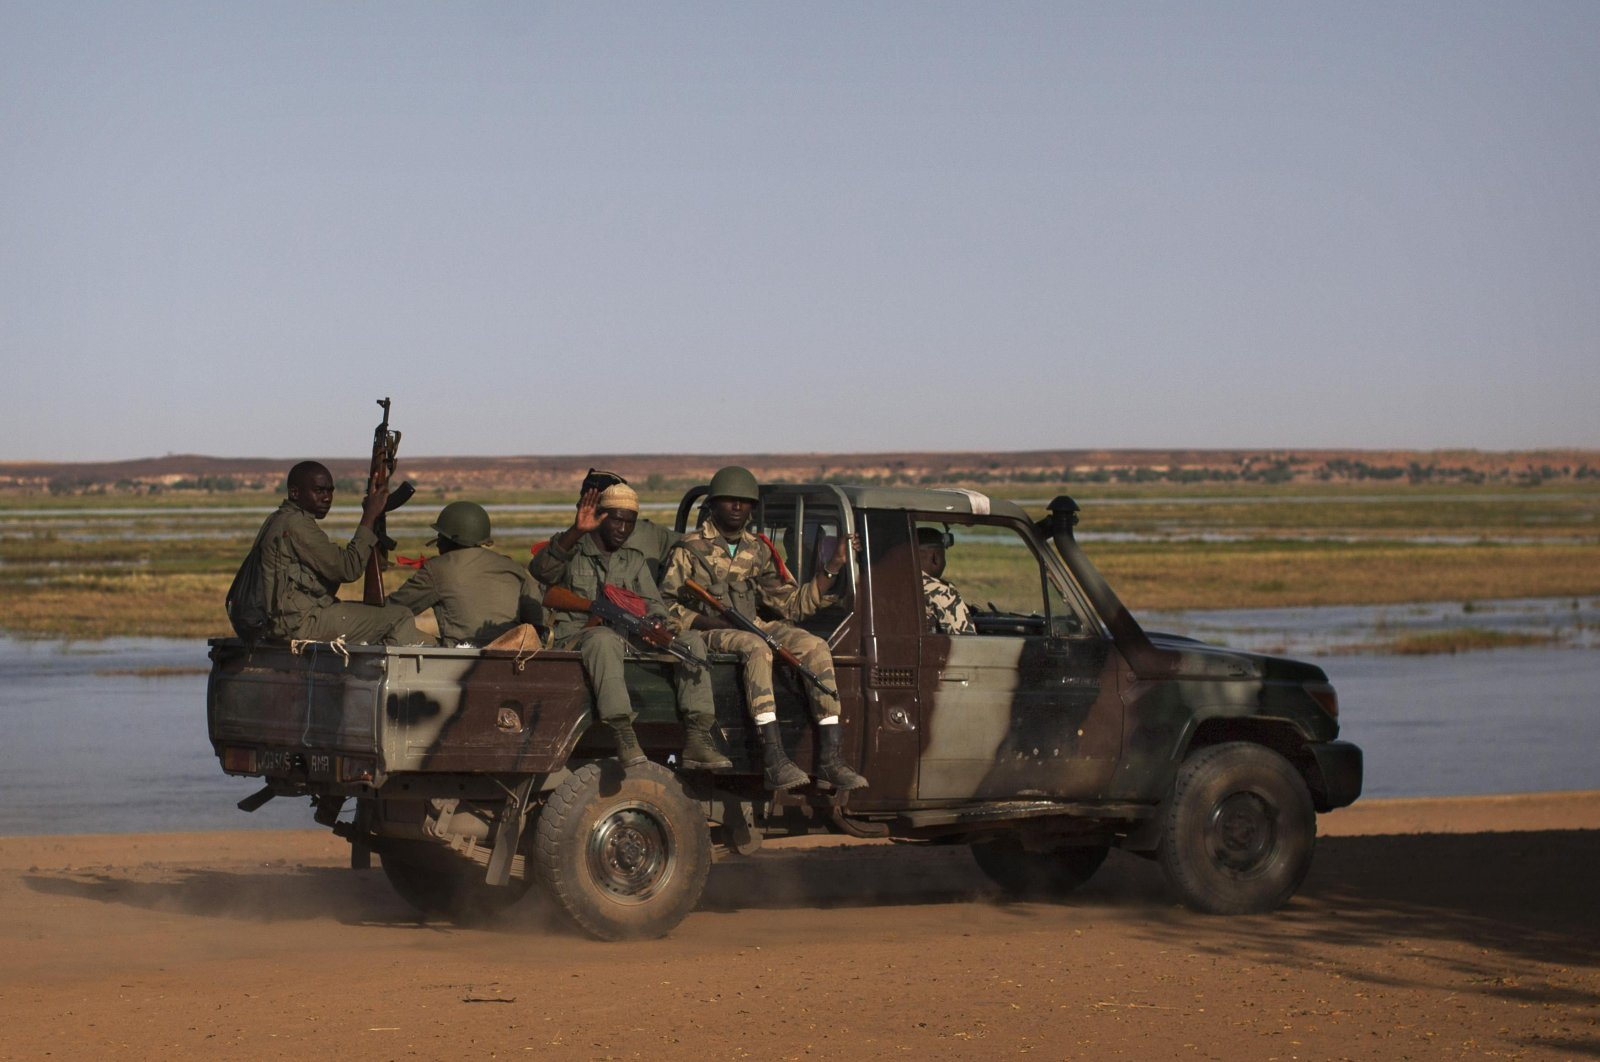 Malian soldiers patrol the banks of the Niger River in a military vehicle in Gao, Mali. Feb. 26, 2013. (Reuters Photo)